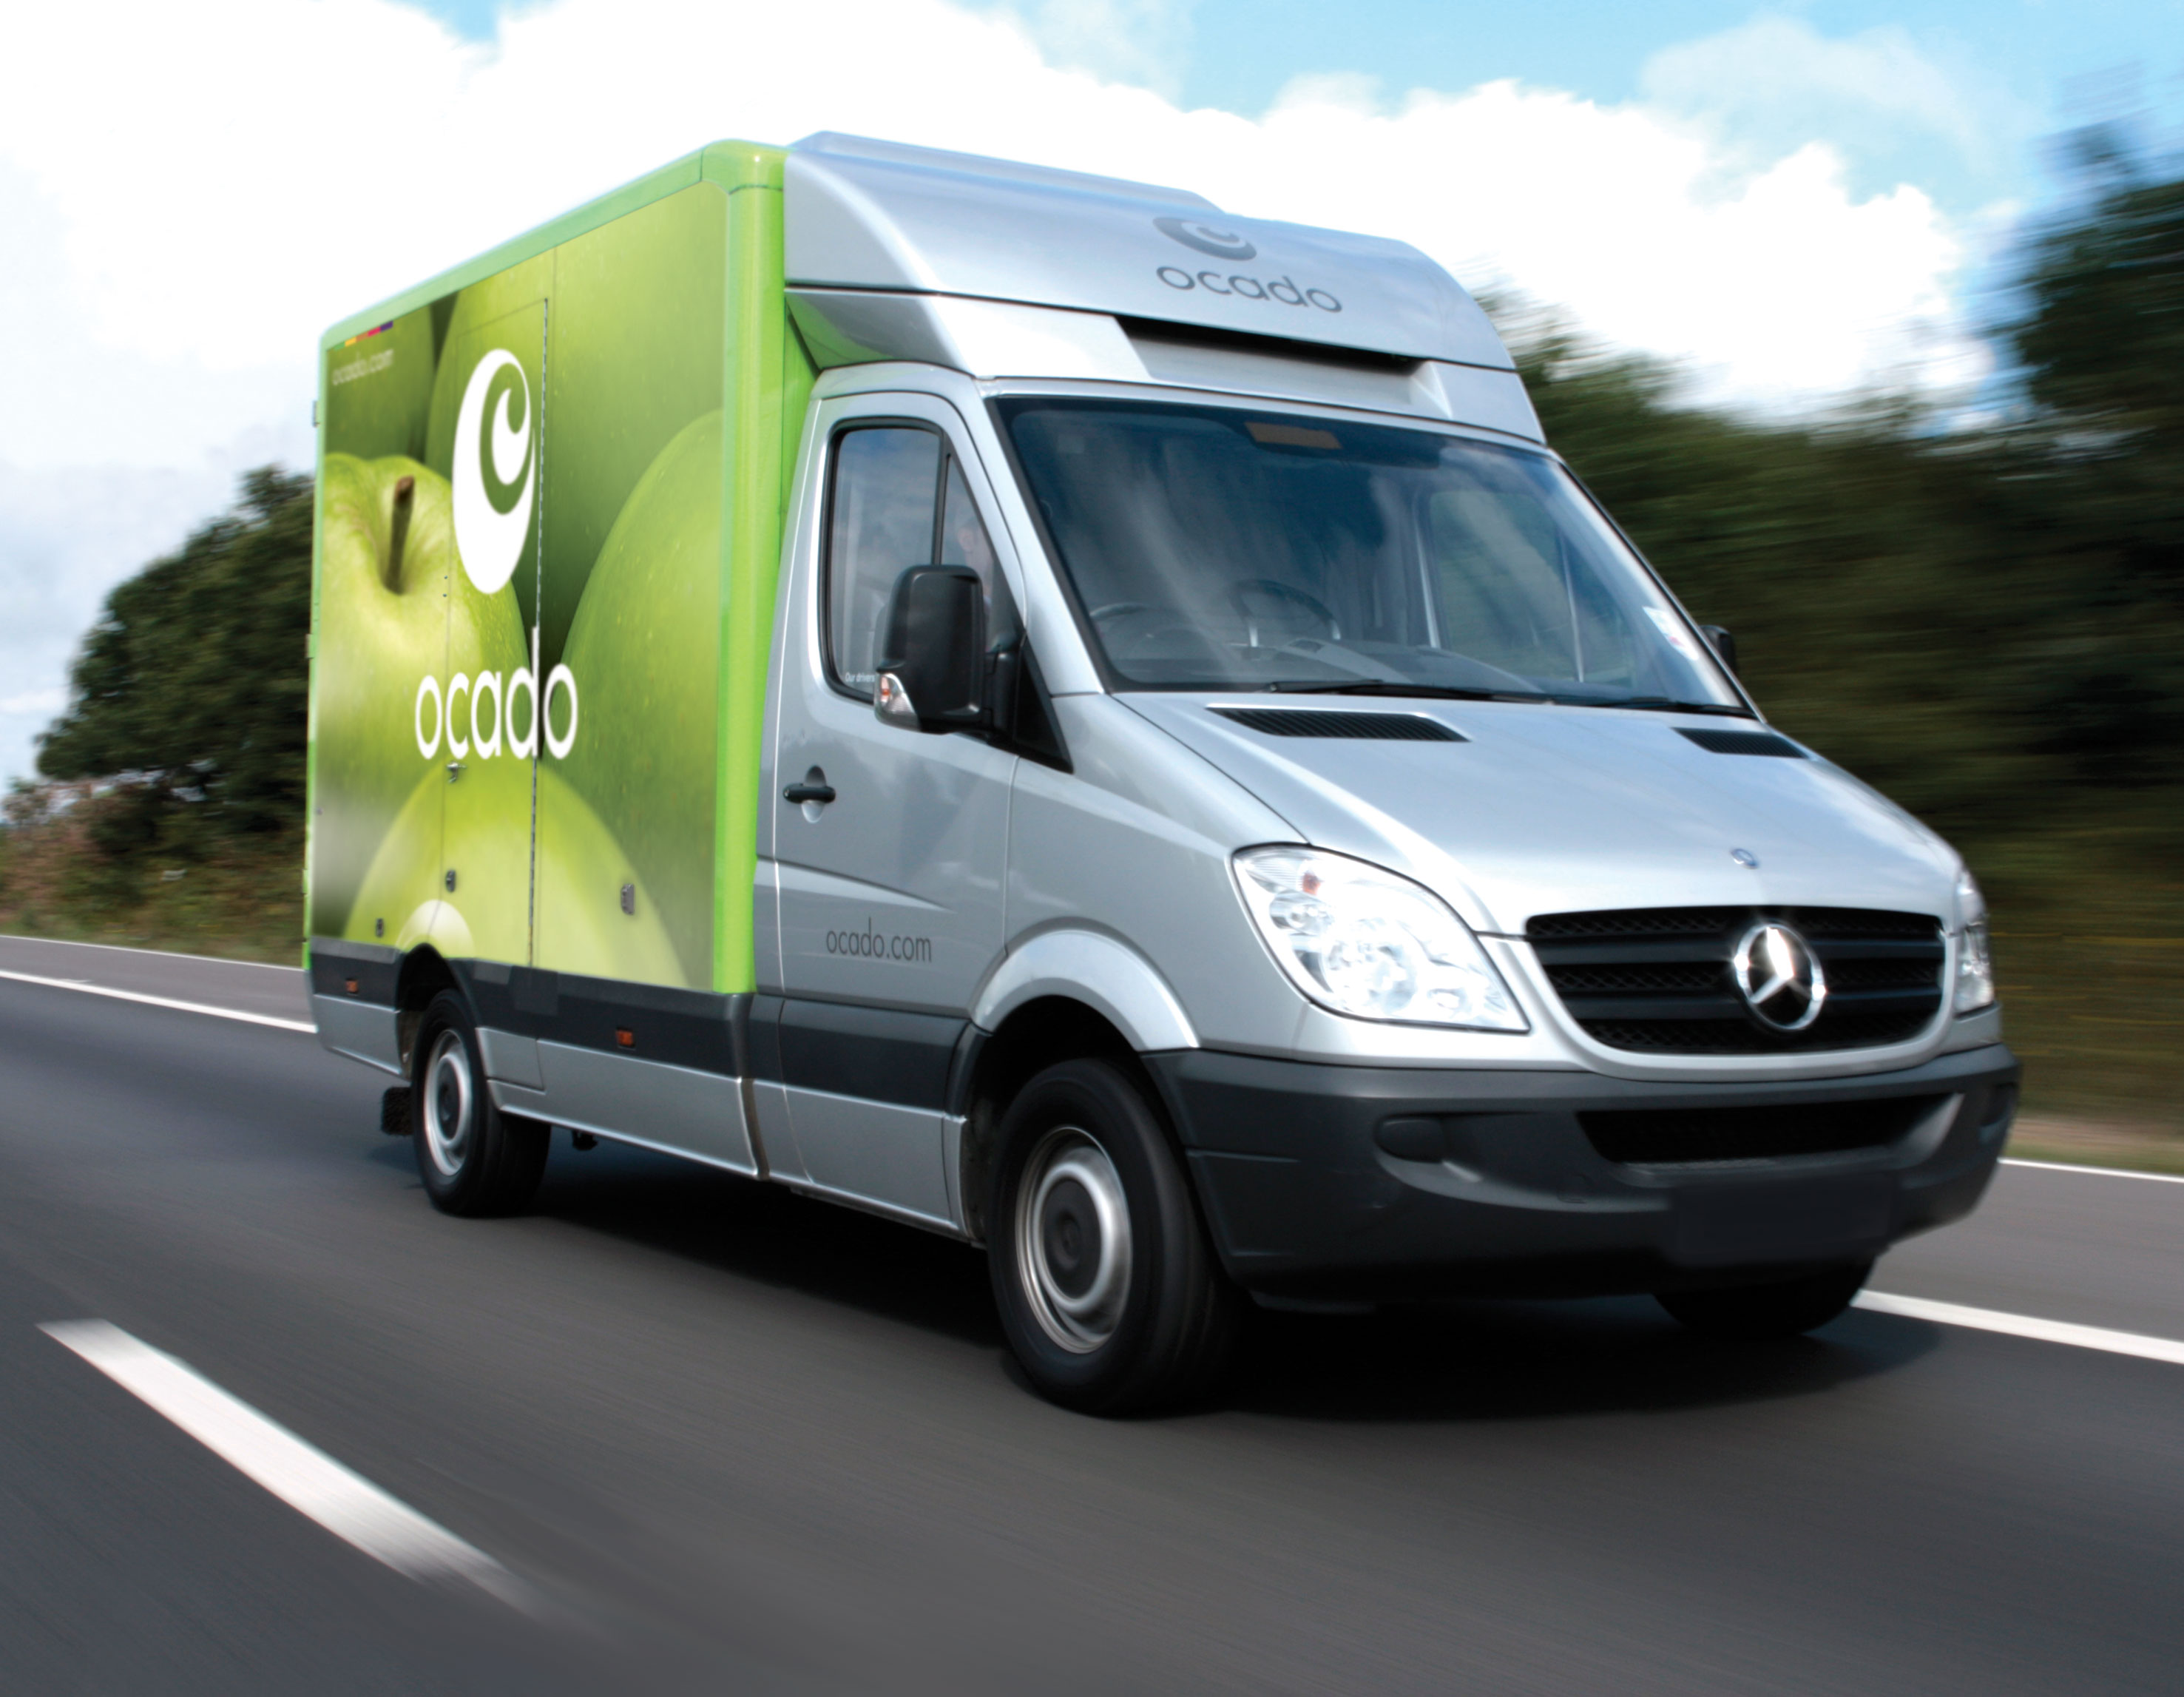 Ocado share price soars as group confirms JV talks with Marks & Spencer